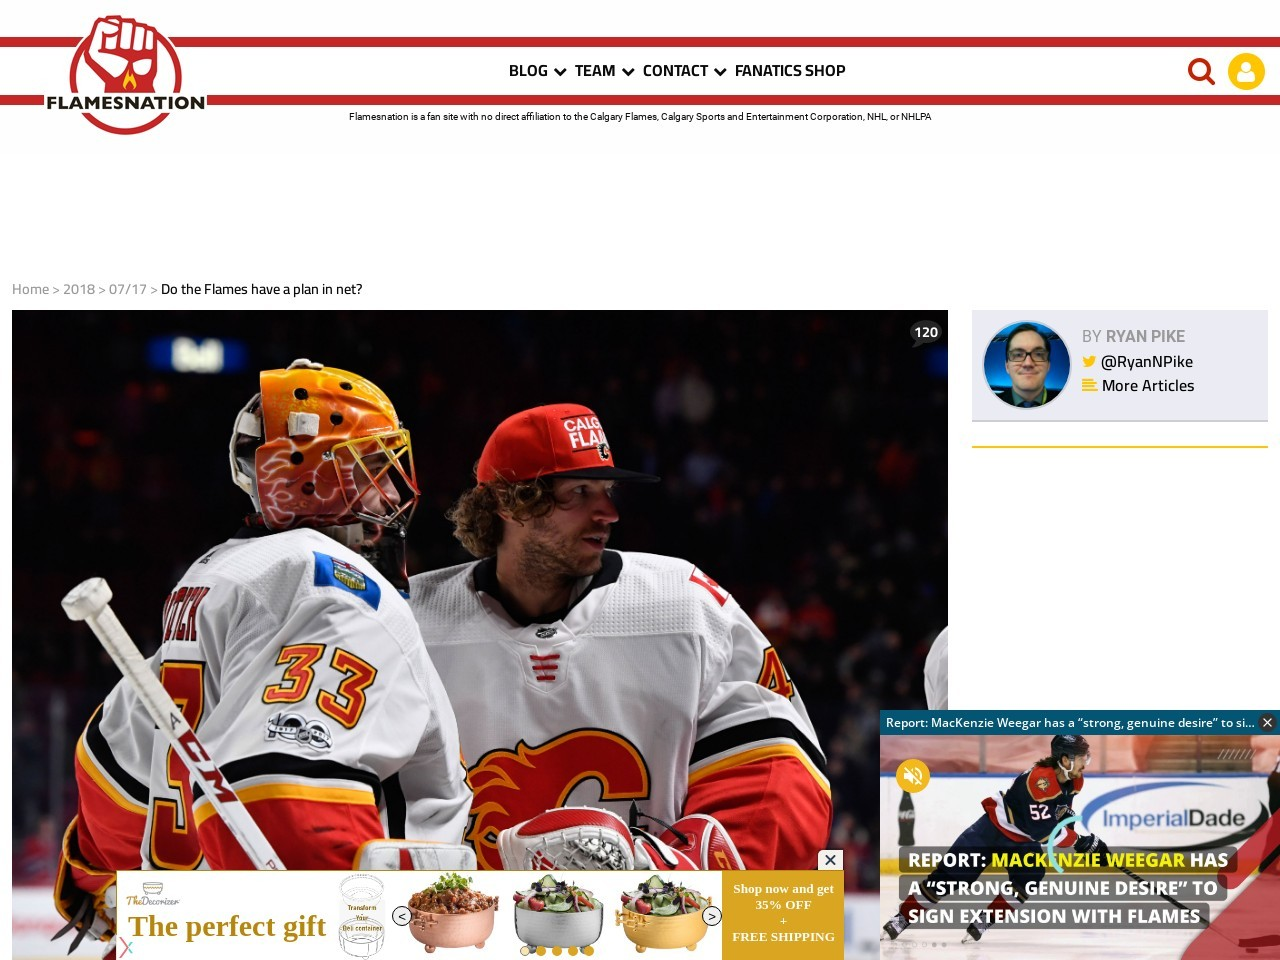 Do the Flames have a plan in internet? – Flamesnation